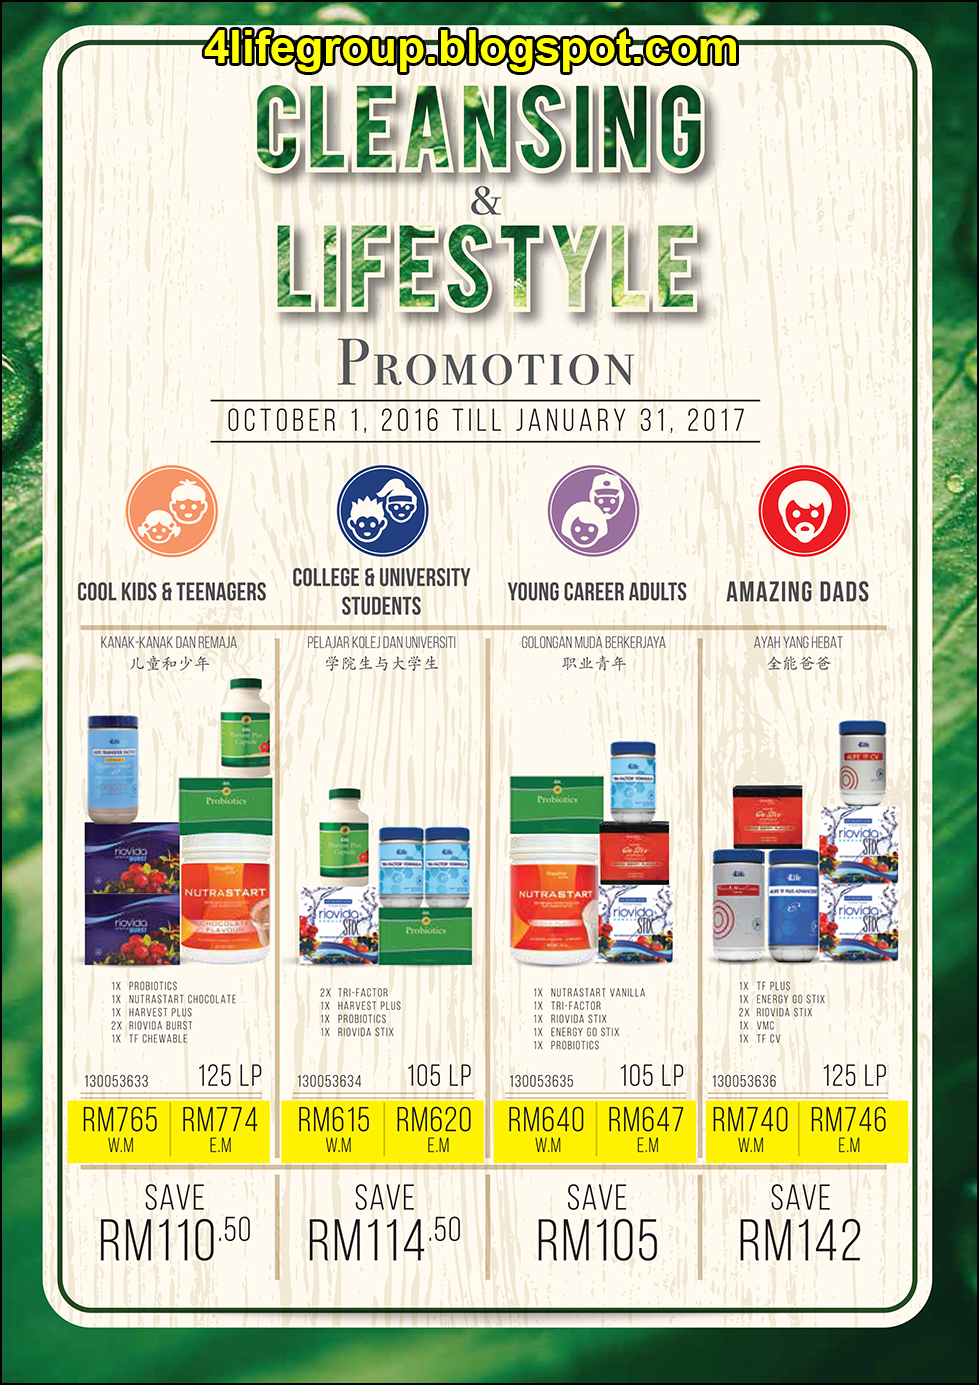 foto Cleansing & Lifestyle Promotion 2016 4Life Malaysia (1)